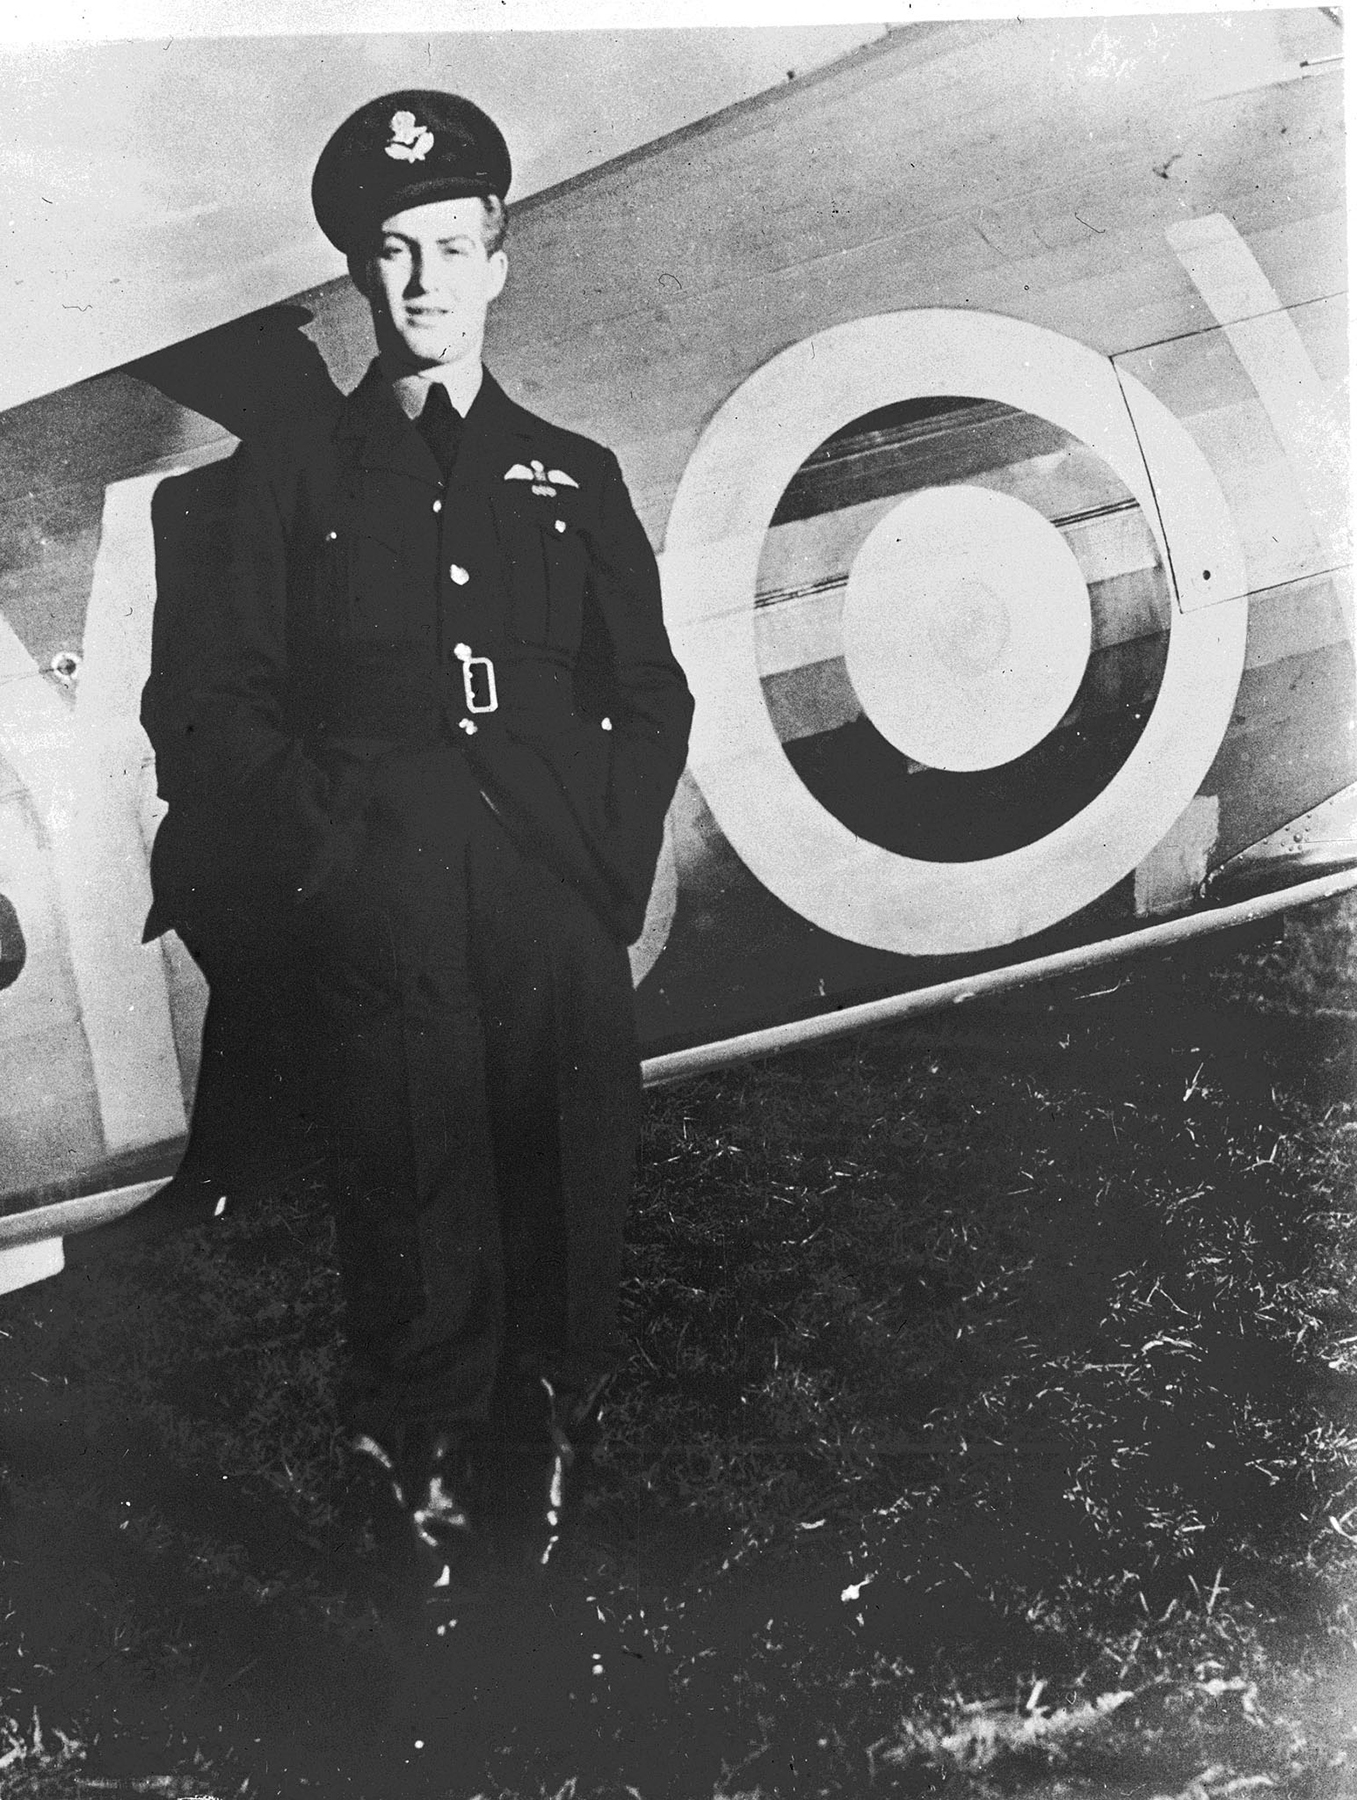 In an undated photograph, 401 Squadron's Flying Officer Blair Dalzell Russel, of Montreal, Québec, leans against the fuselage of his Hawker Hurricane fighter at a Fighter Station somewhere in England. Flying Officer Russel received the Distinguished Flying Cross from King George VI for his service with No. 1 Fighter Squadron of the Royal Canadian Air Force in the battle over Britain, as did Squadron Leader Ernest Archibald McNab and Flight Lieutenant Gordon Roy McGregor. PHOTO: DND Archives, PL-3093